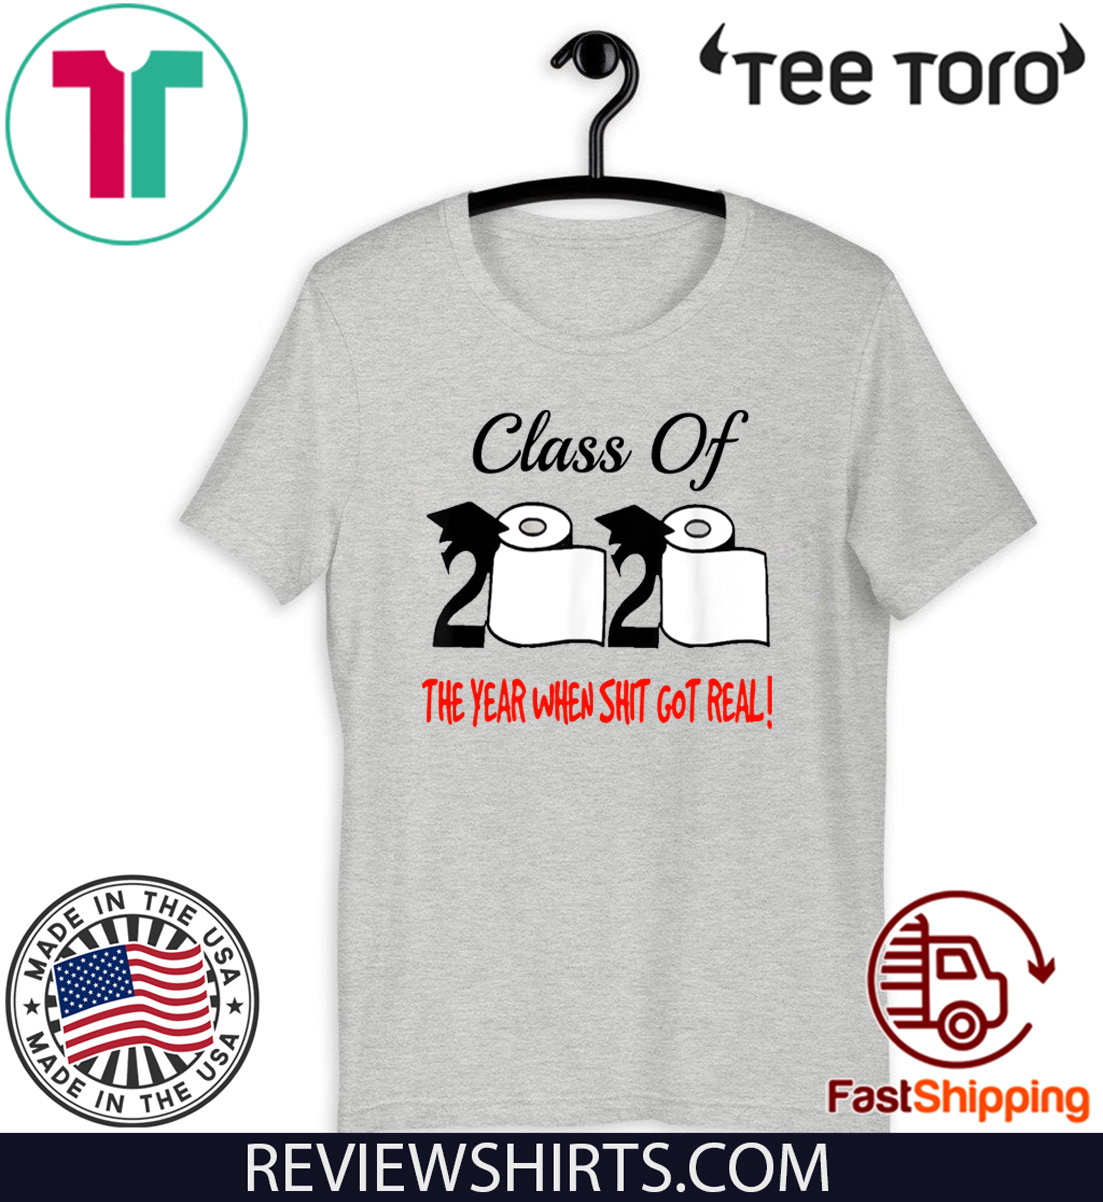 Class Of 2020 The Year Shit Got Real For T-Shirt